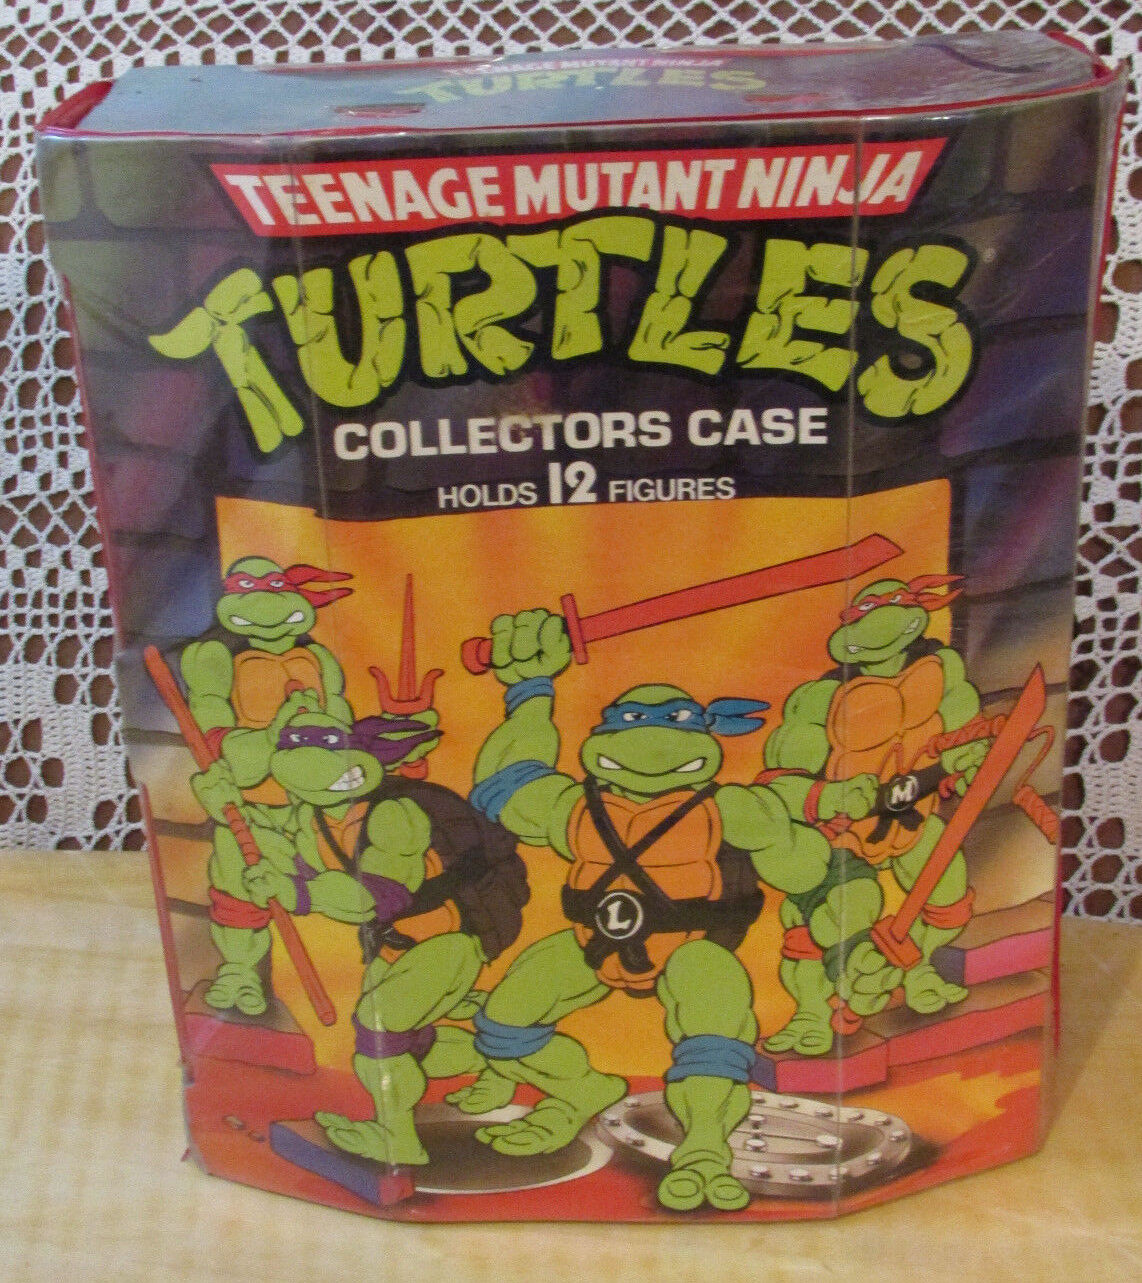 TEENAGE MUTANT NINJA TURTLES 1988 COLLECTORS CASE With 10 Action Figures Vintage